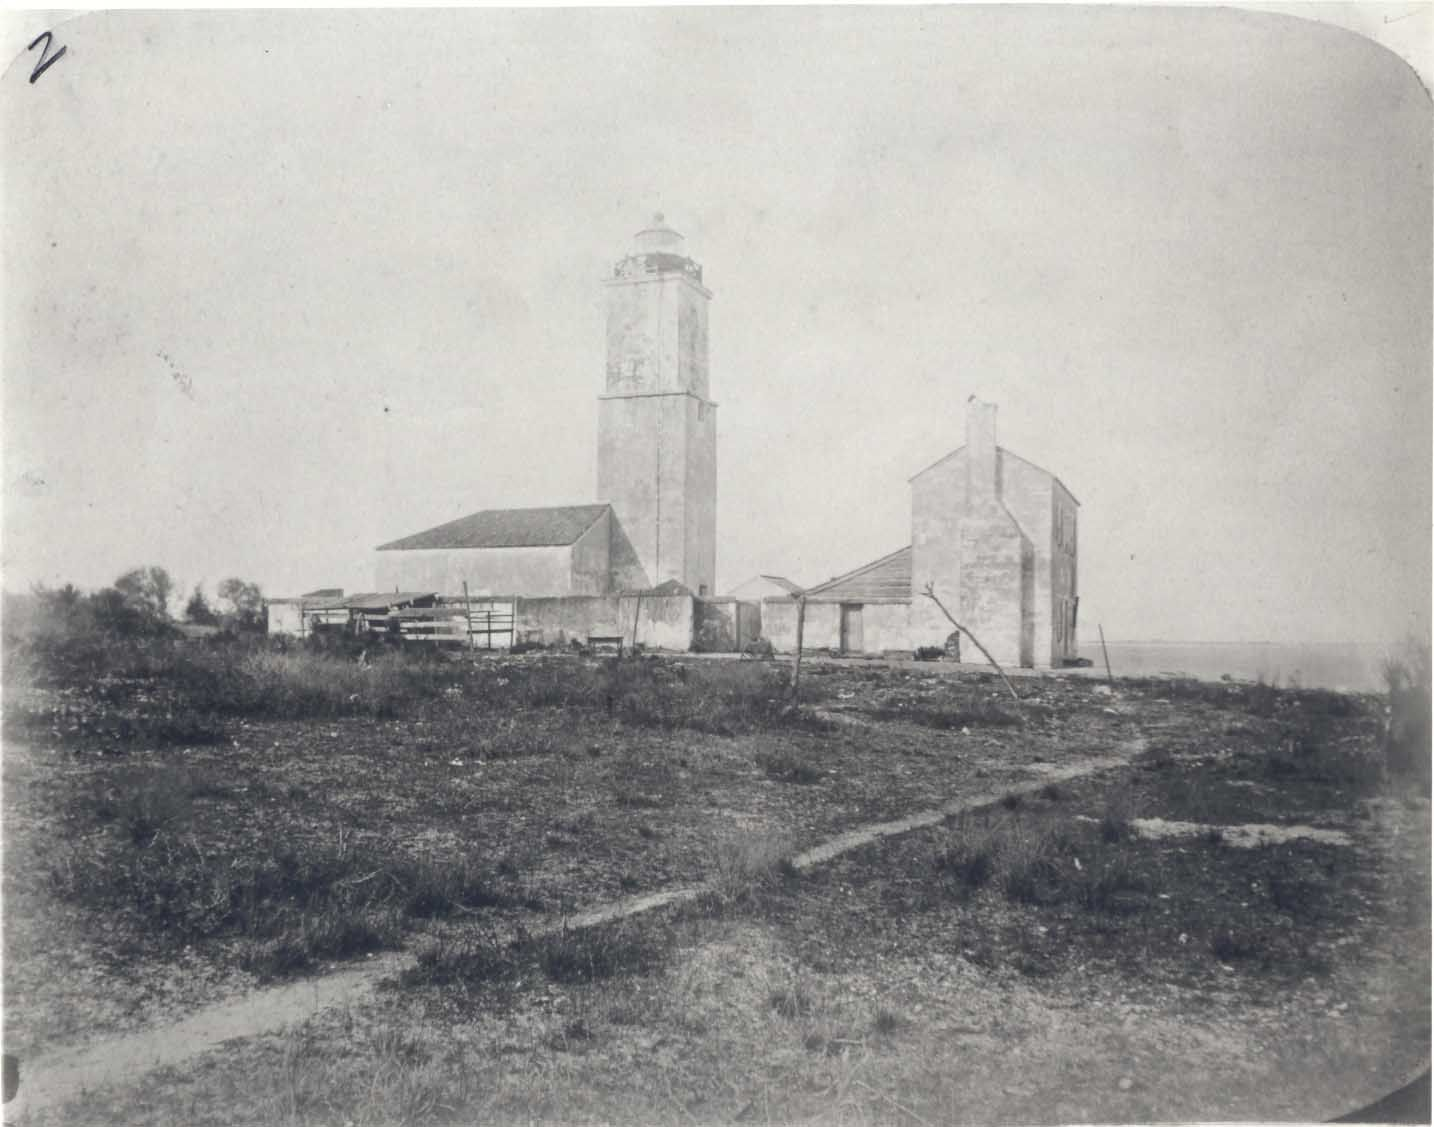 (c. 1860) First St. Augustine Lighthouse, viewed from the west.